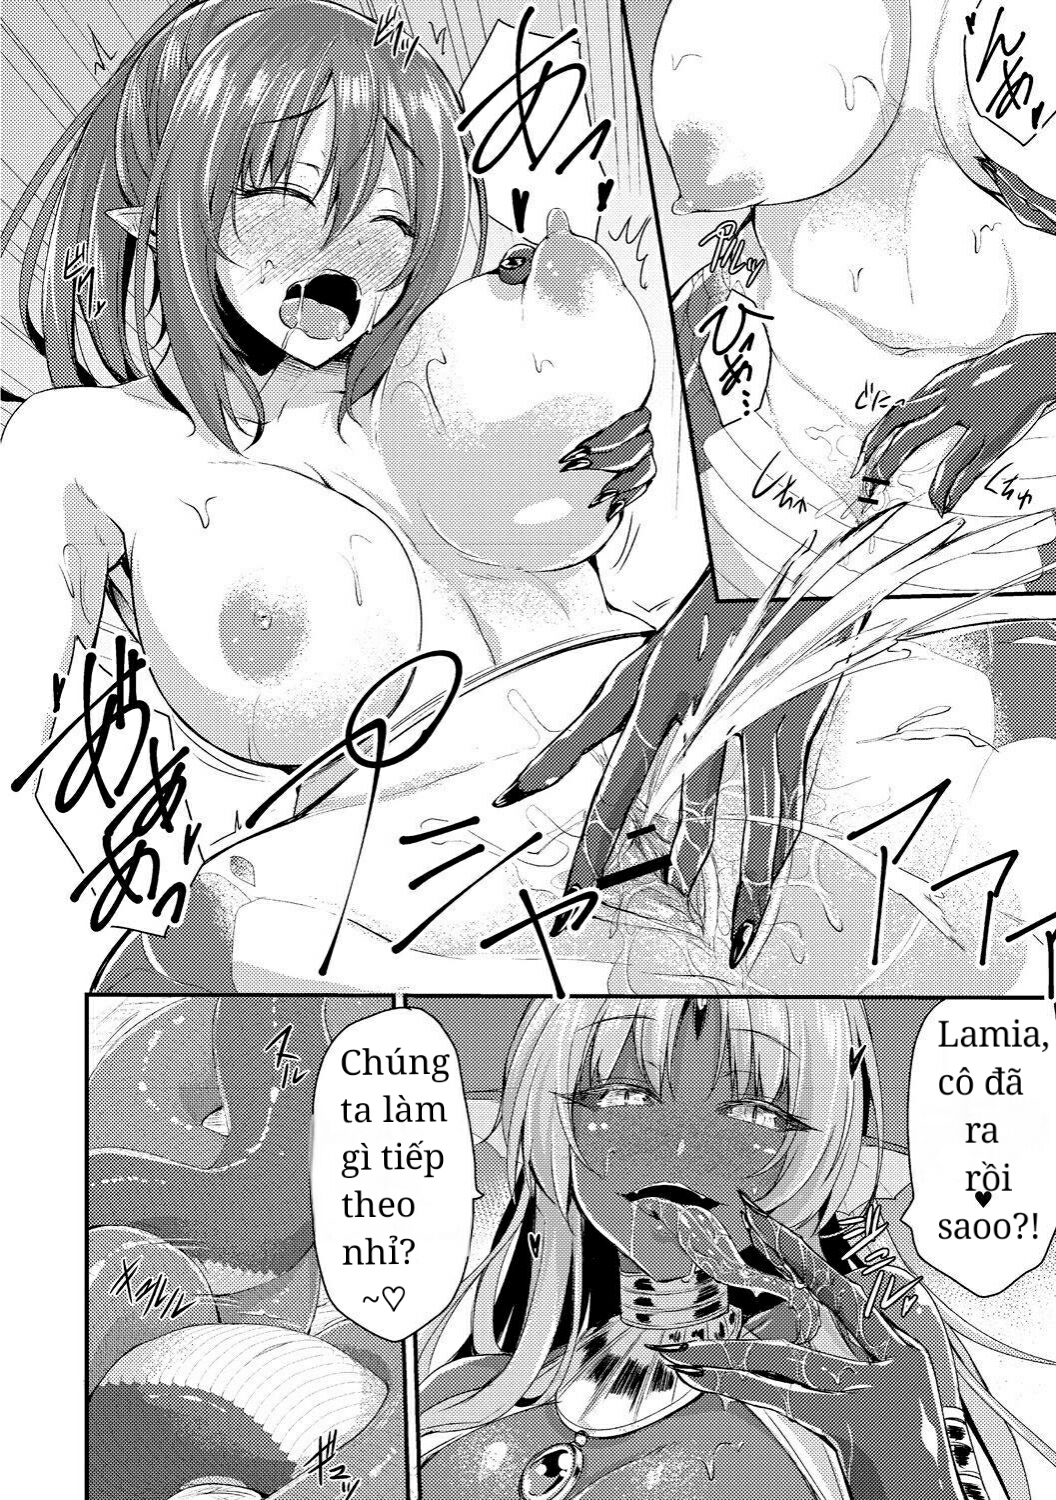 HentaiVN.net - Ảnh 12 - Echidna-samas Way To Kill Time - Oneshot